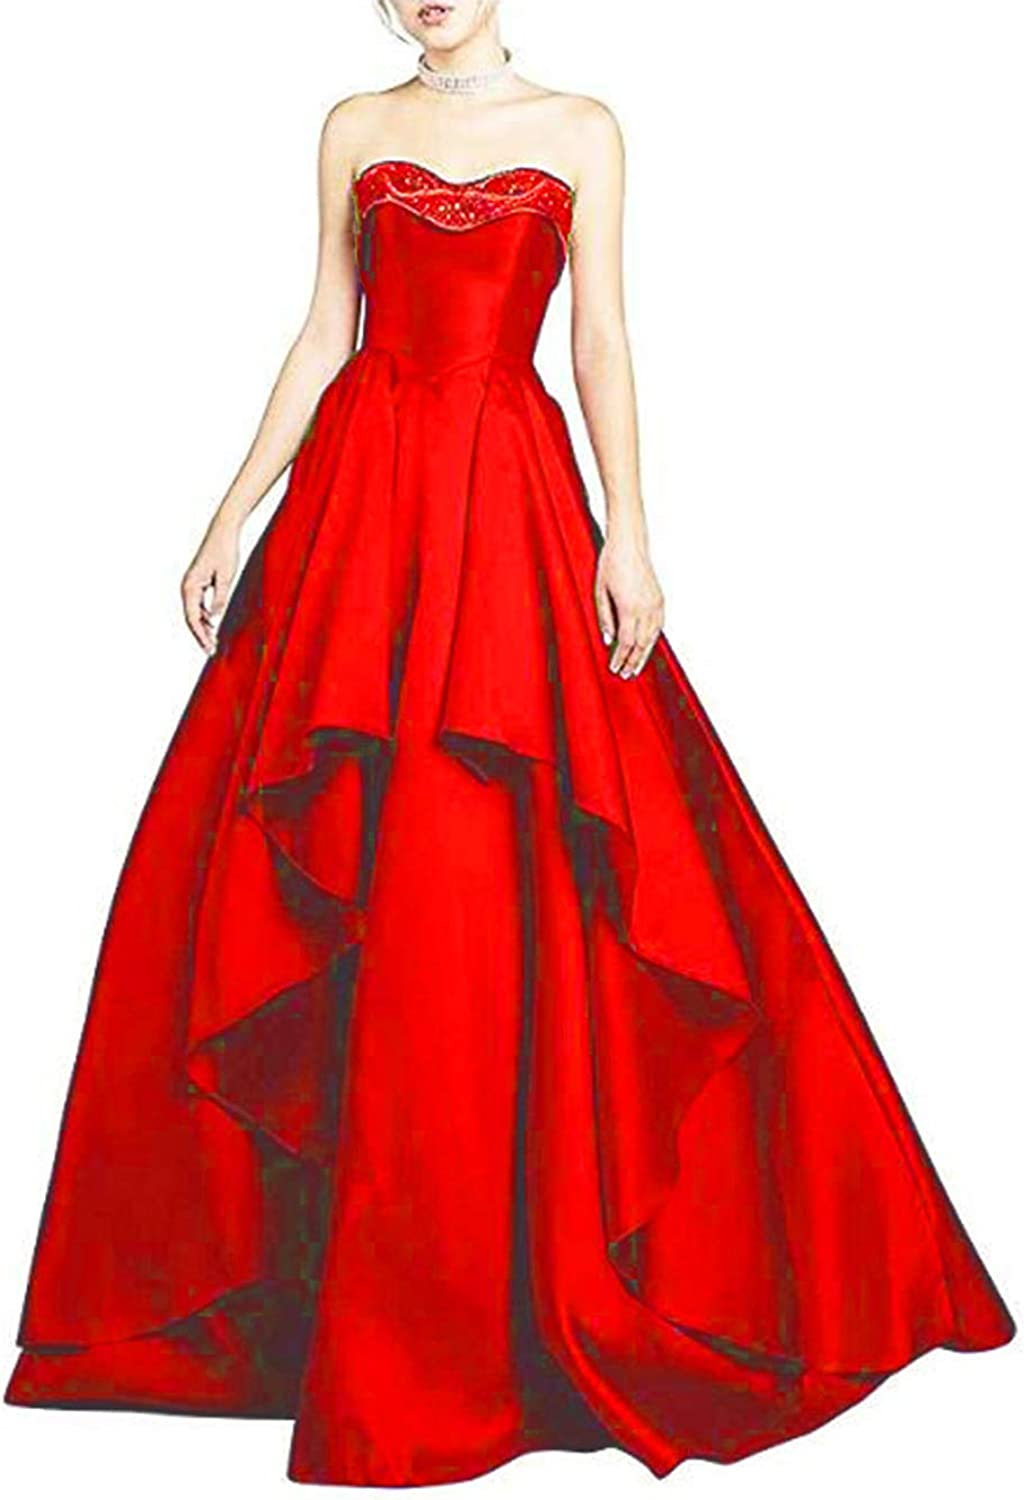 Alilith.Z Sexy Beaded Sweetheart Satin Prom Dresses Ball Gown Formal Evening Dresses Party Gowns for Women